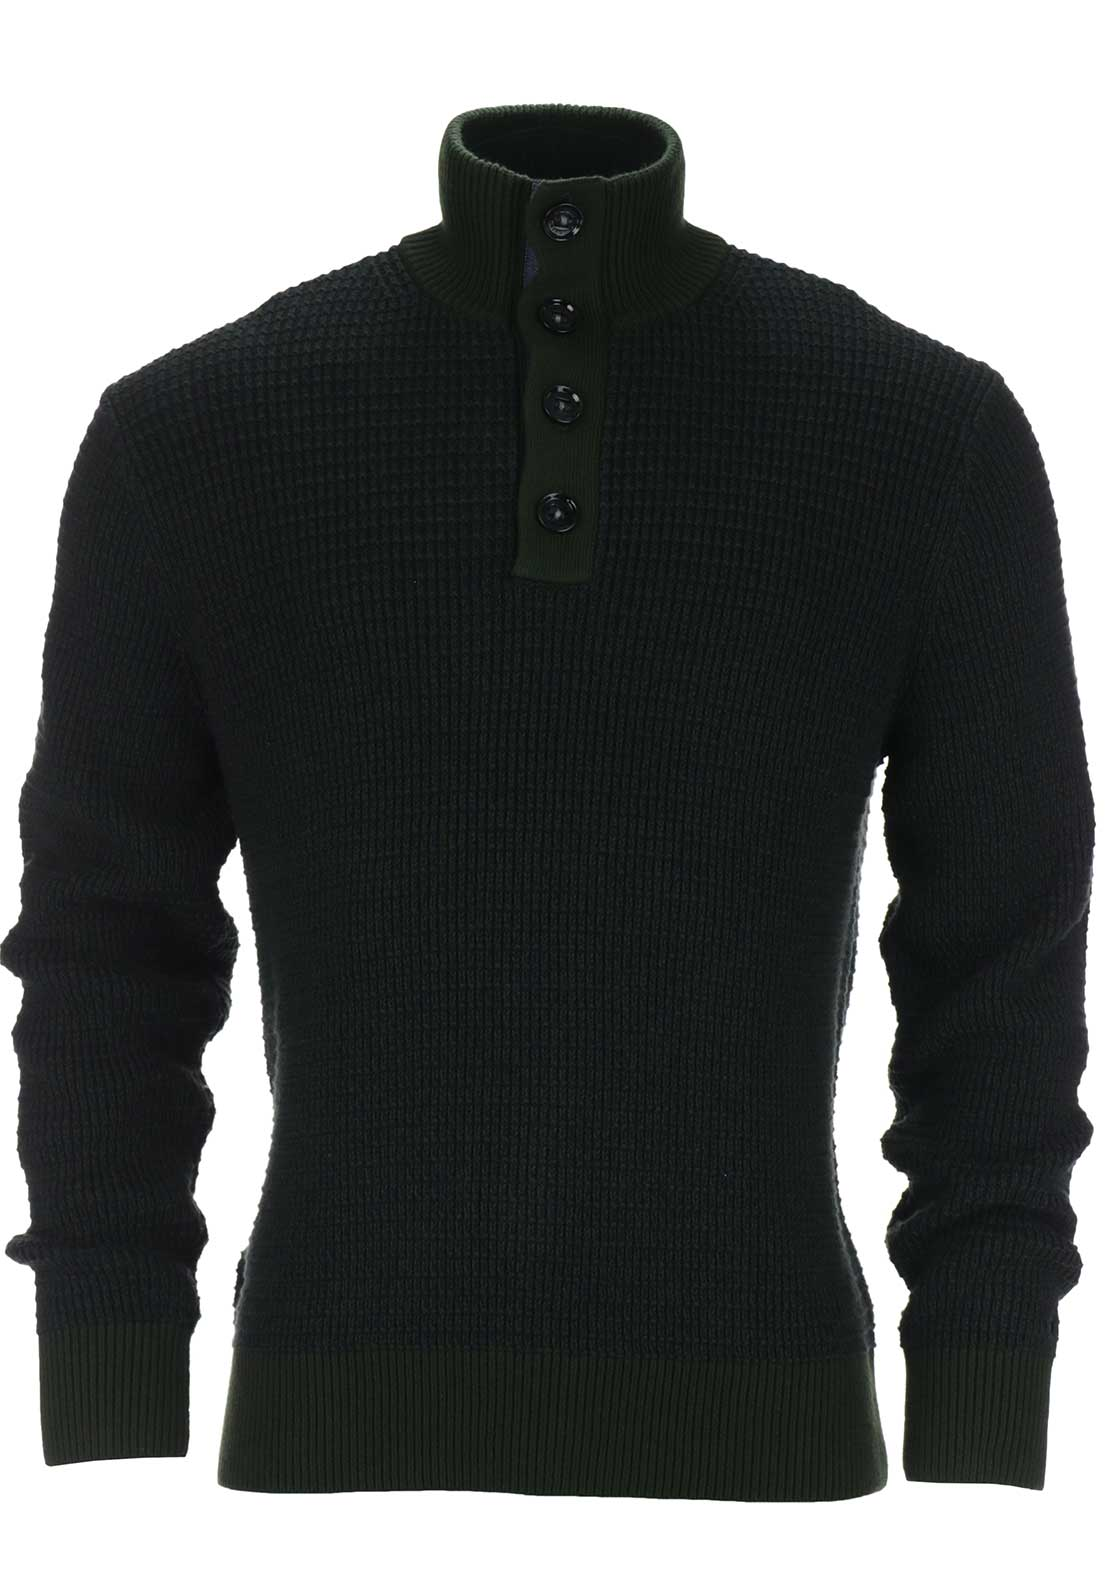 Tommy Hilfiger Mens Tylor Button Mock Neck Textured Knit, Green